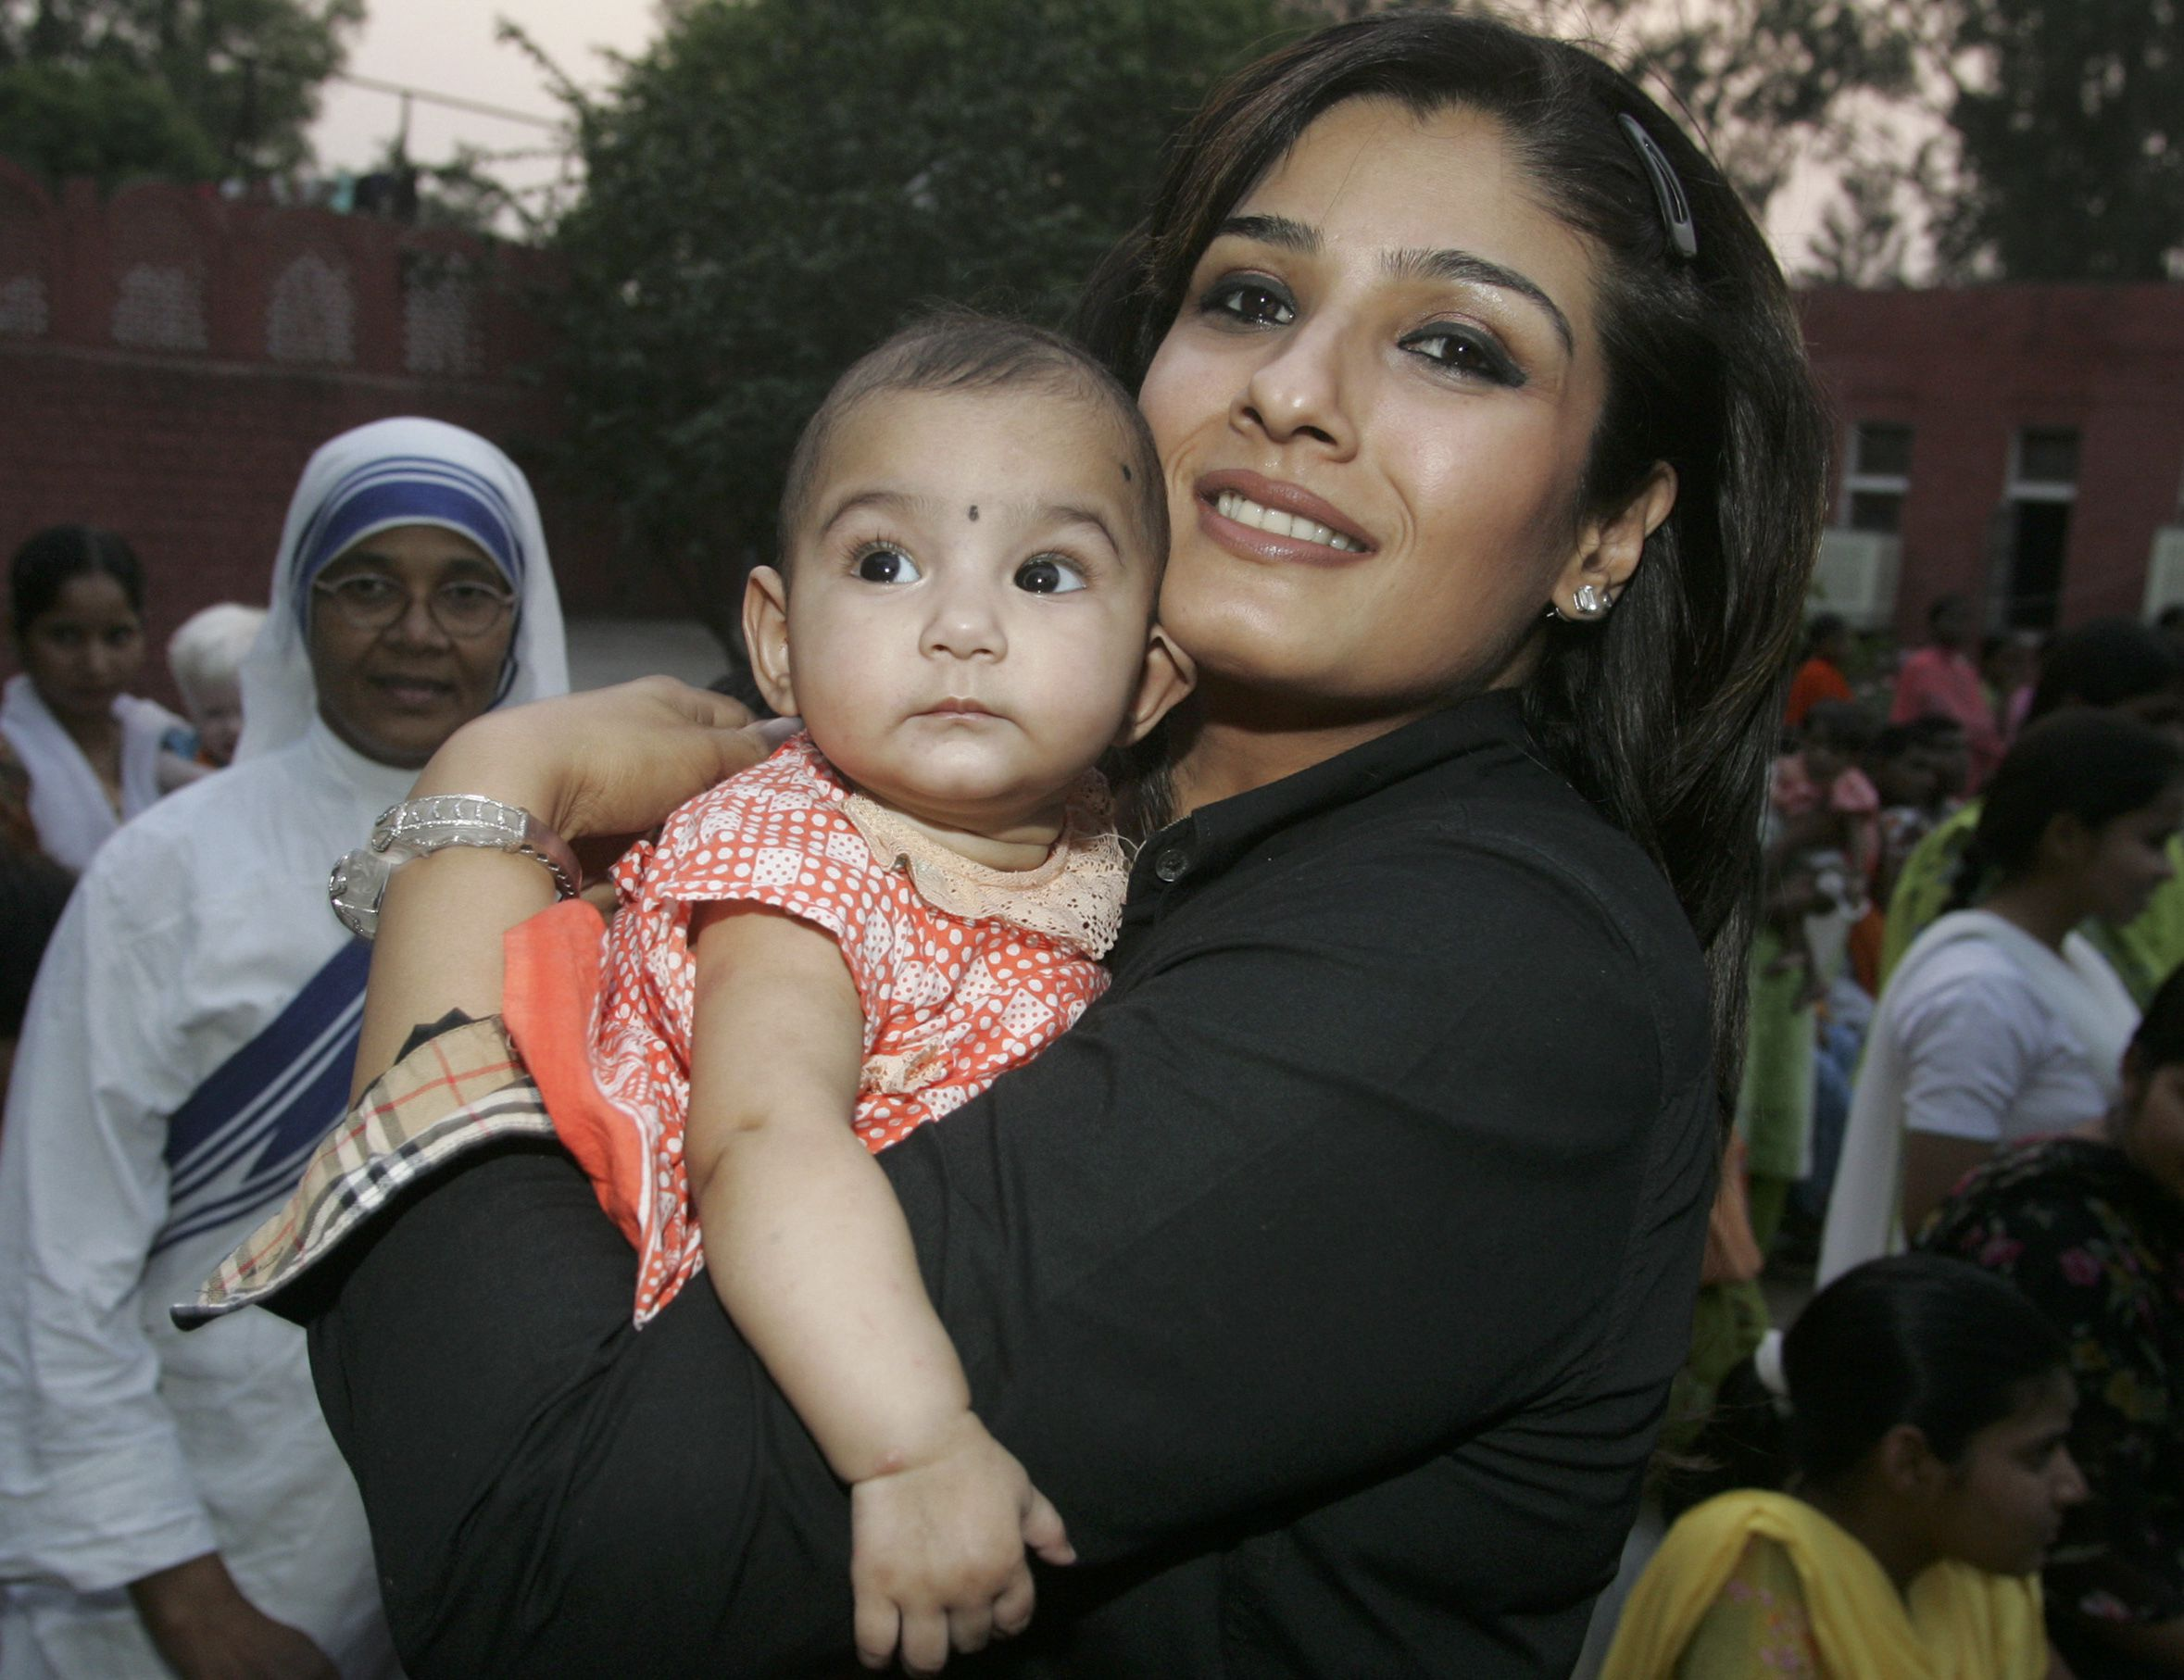 I am a single mother and proud of it - Times of India